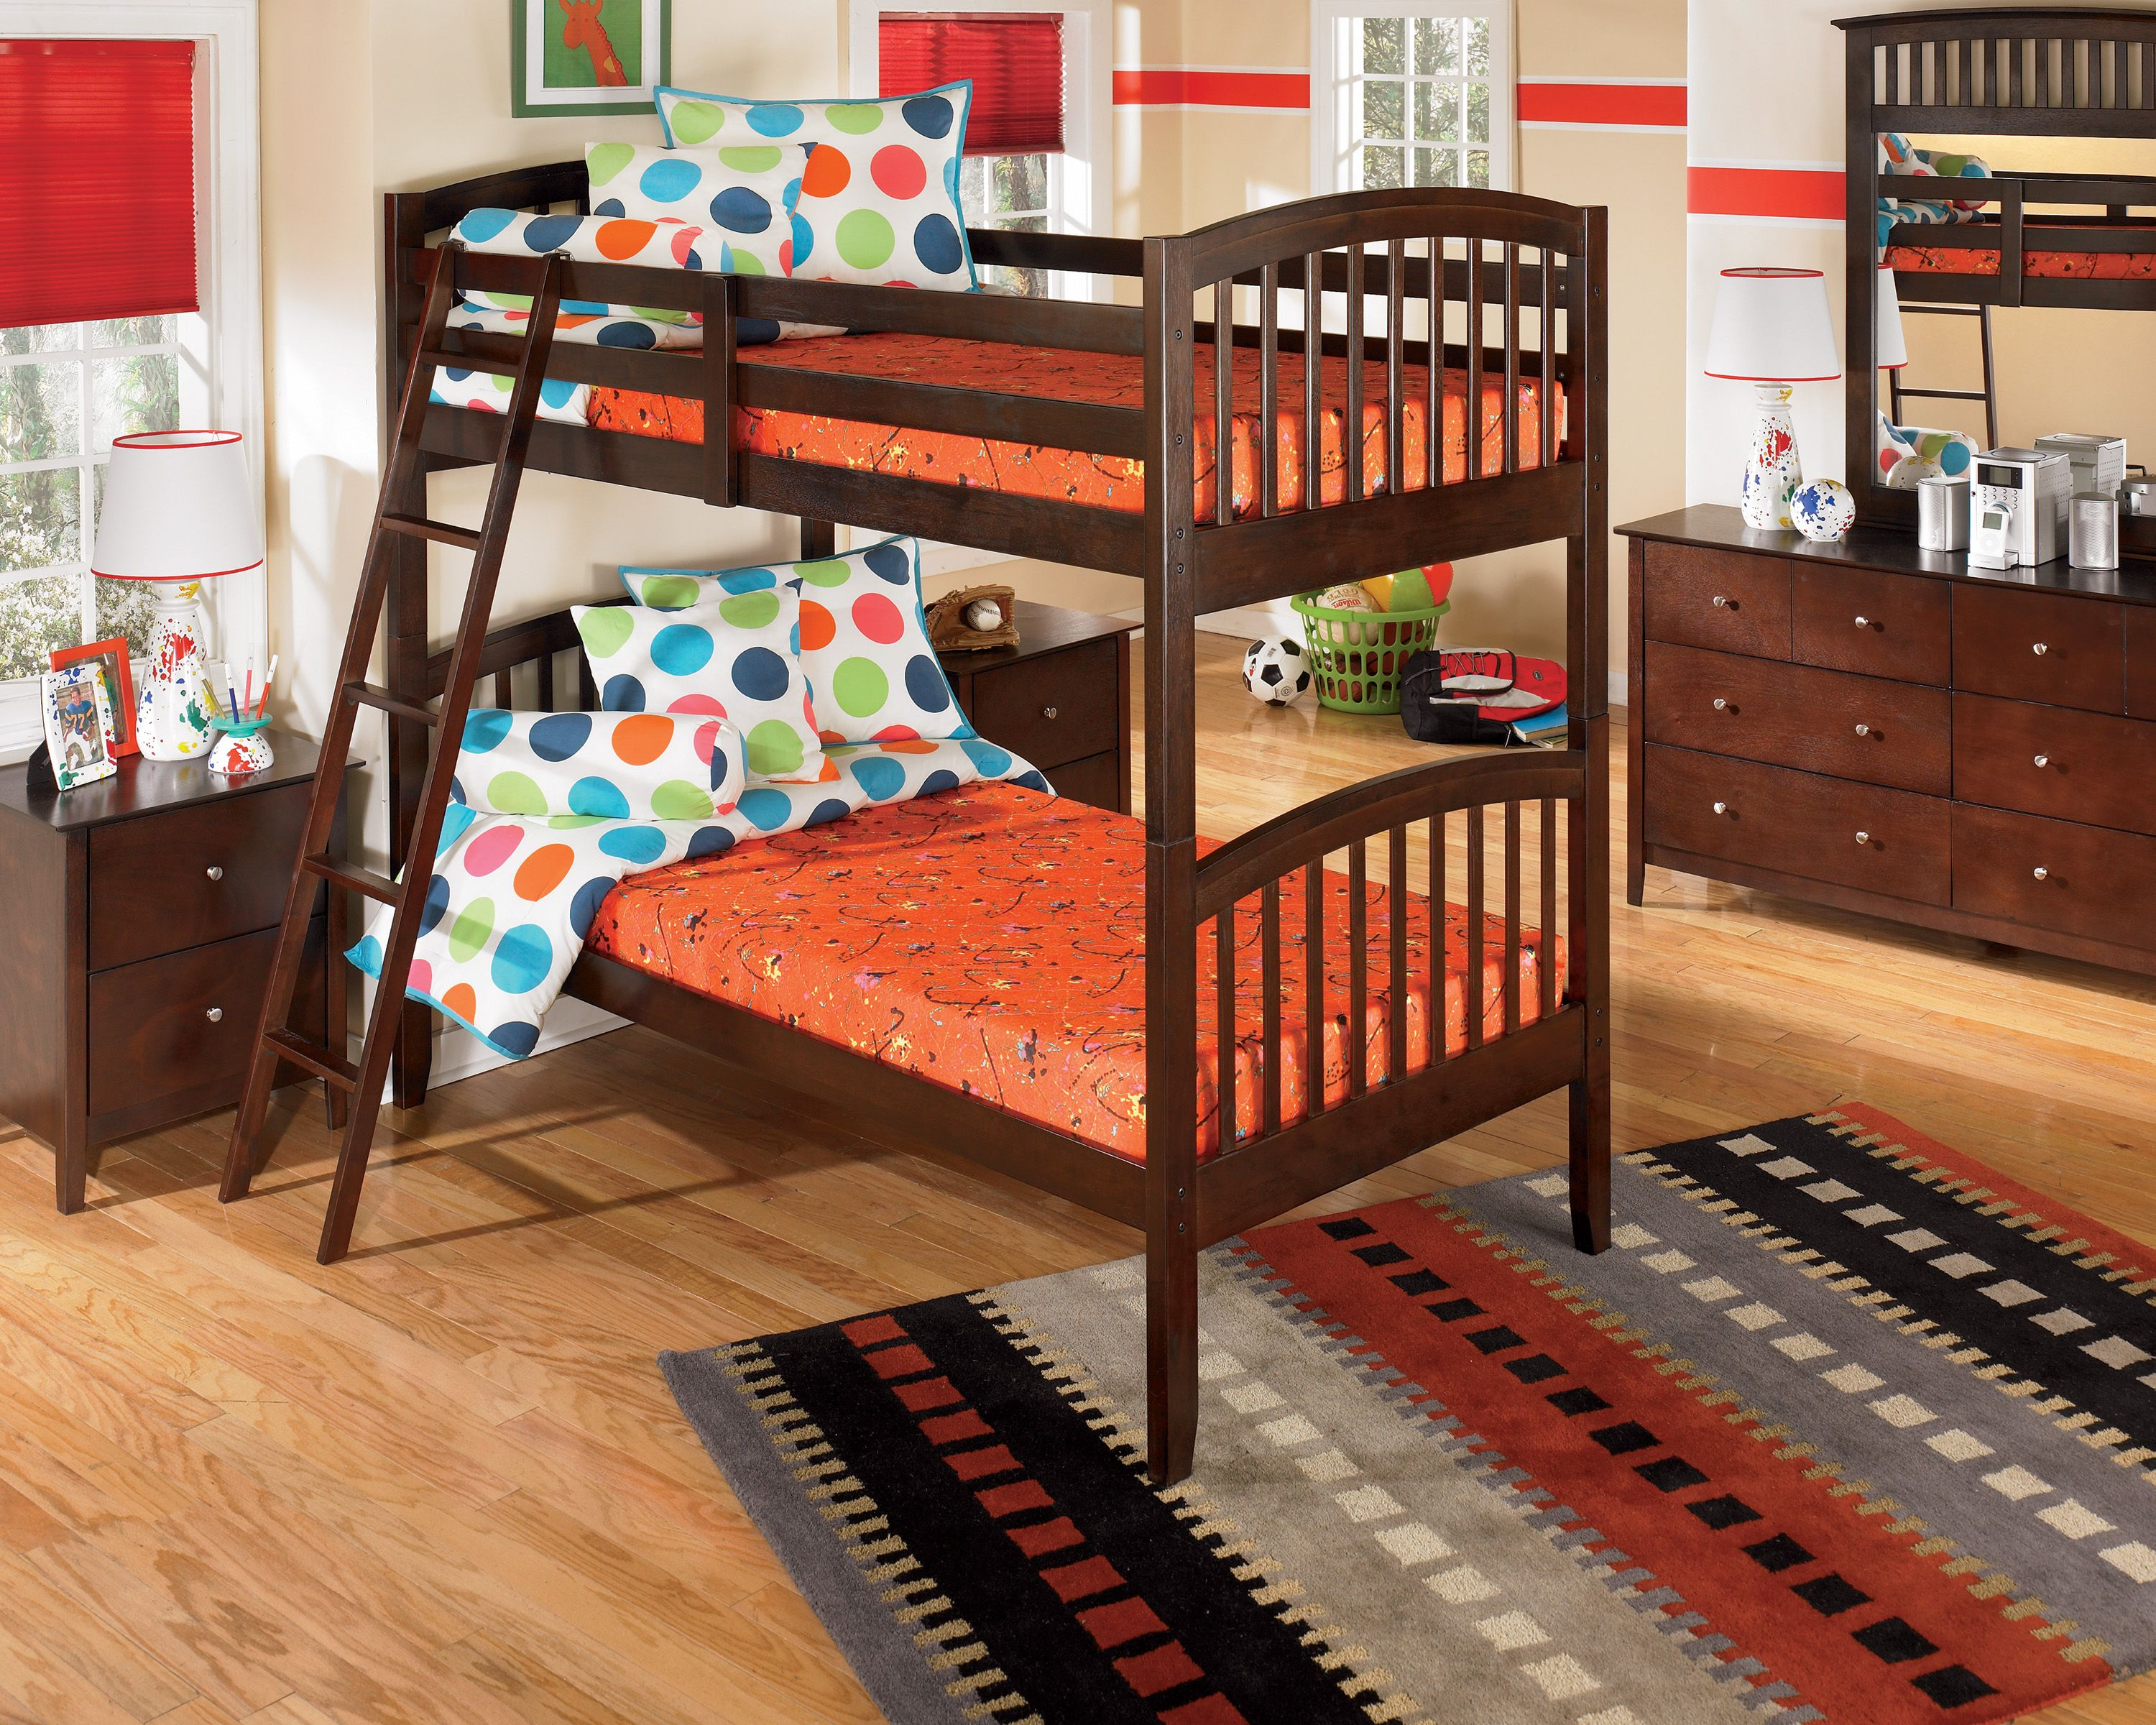 Bunk bed mattresses should be thin enough so that the safety rail for the  top bunk